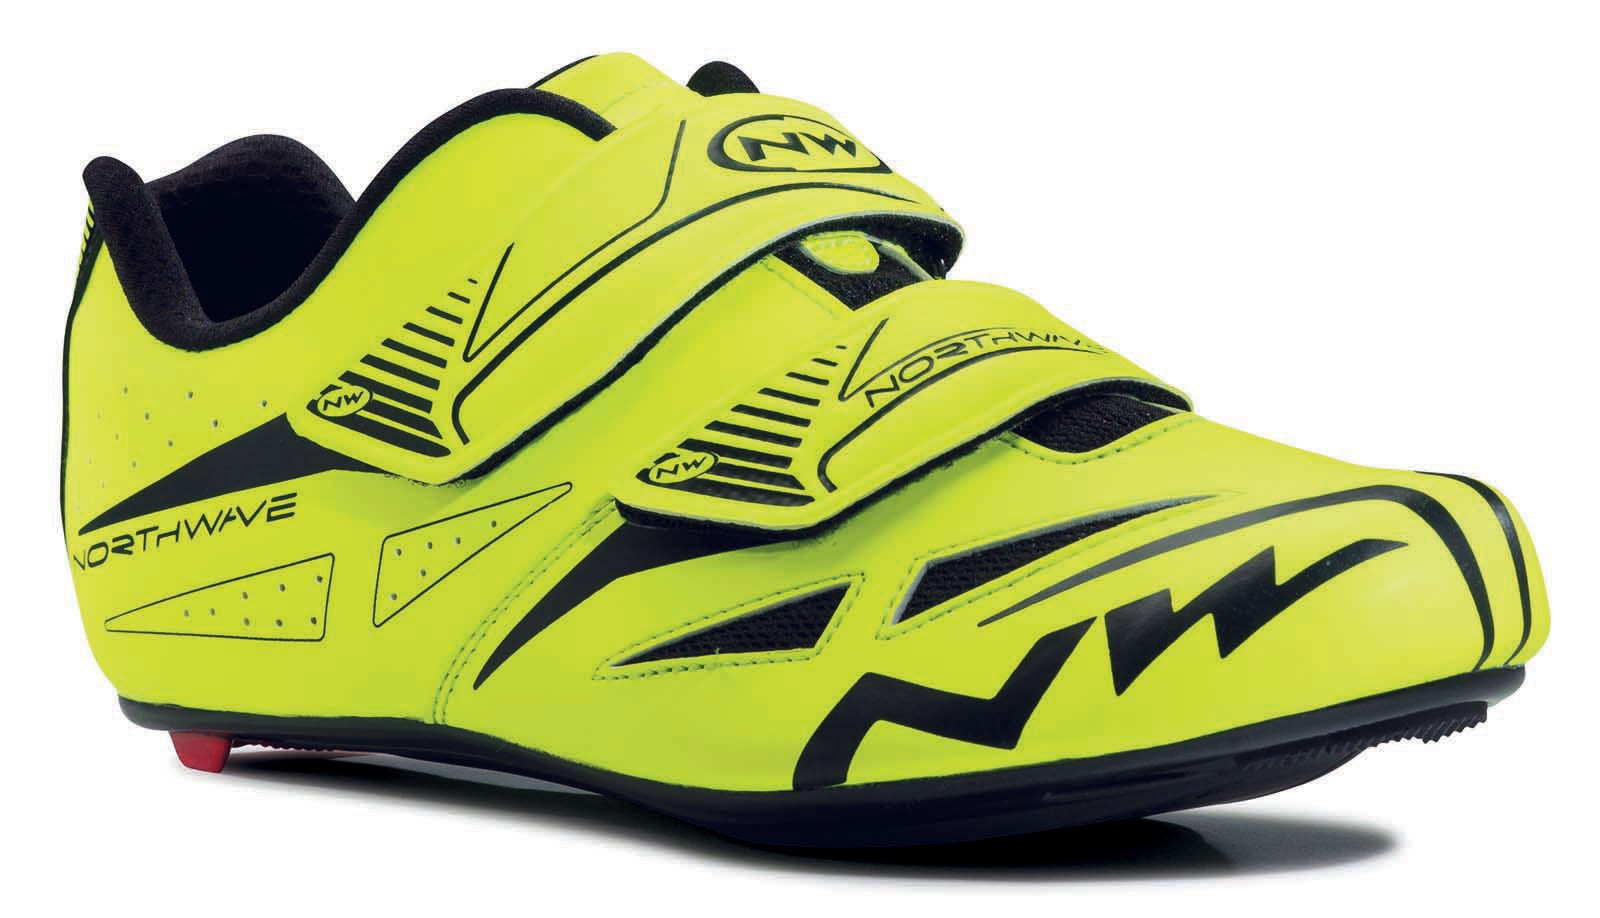 NORTHWAVE Man road cycling shoes JET EVO fluo yellow